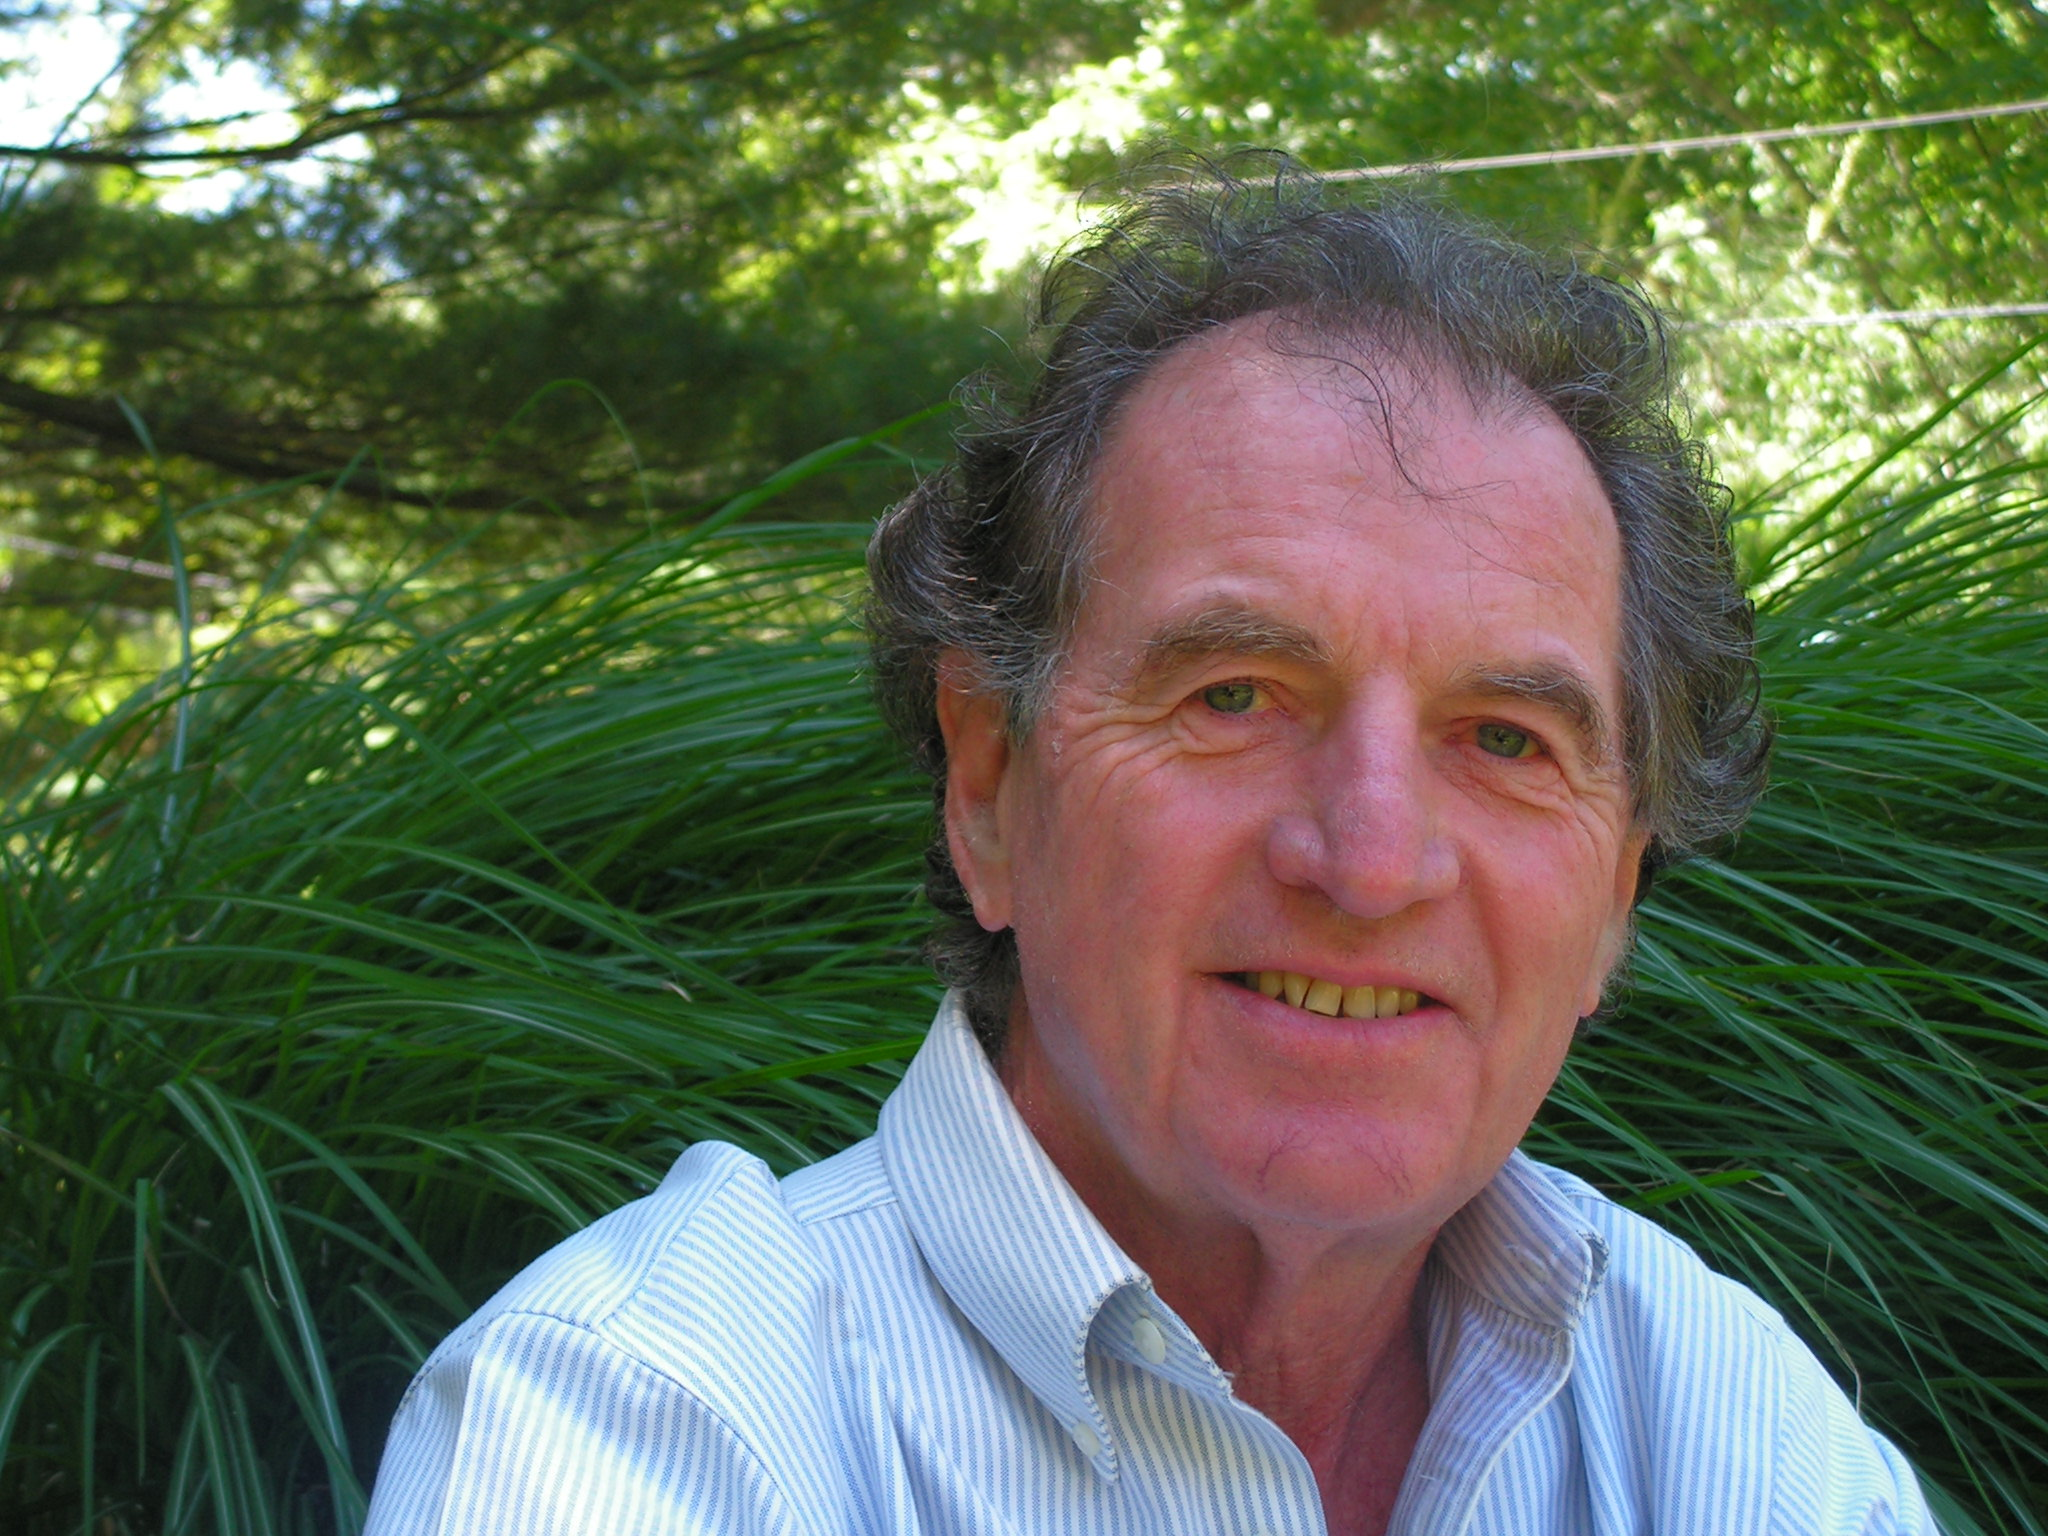 Danny Martin  is a coach who has a strong practical and theoretical foundation in ecology, philosophy, spirituality, communication, and leadership. A long time coach with many years of experience in designing, training and facilitating dialogues in multiple contexts including spiritual guidance.